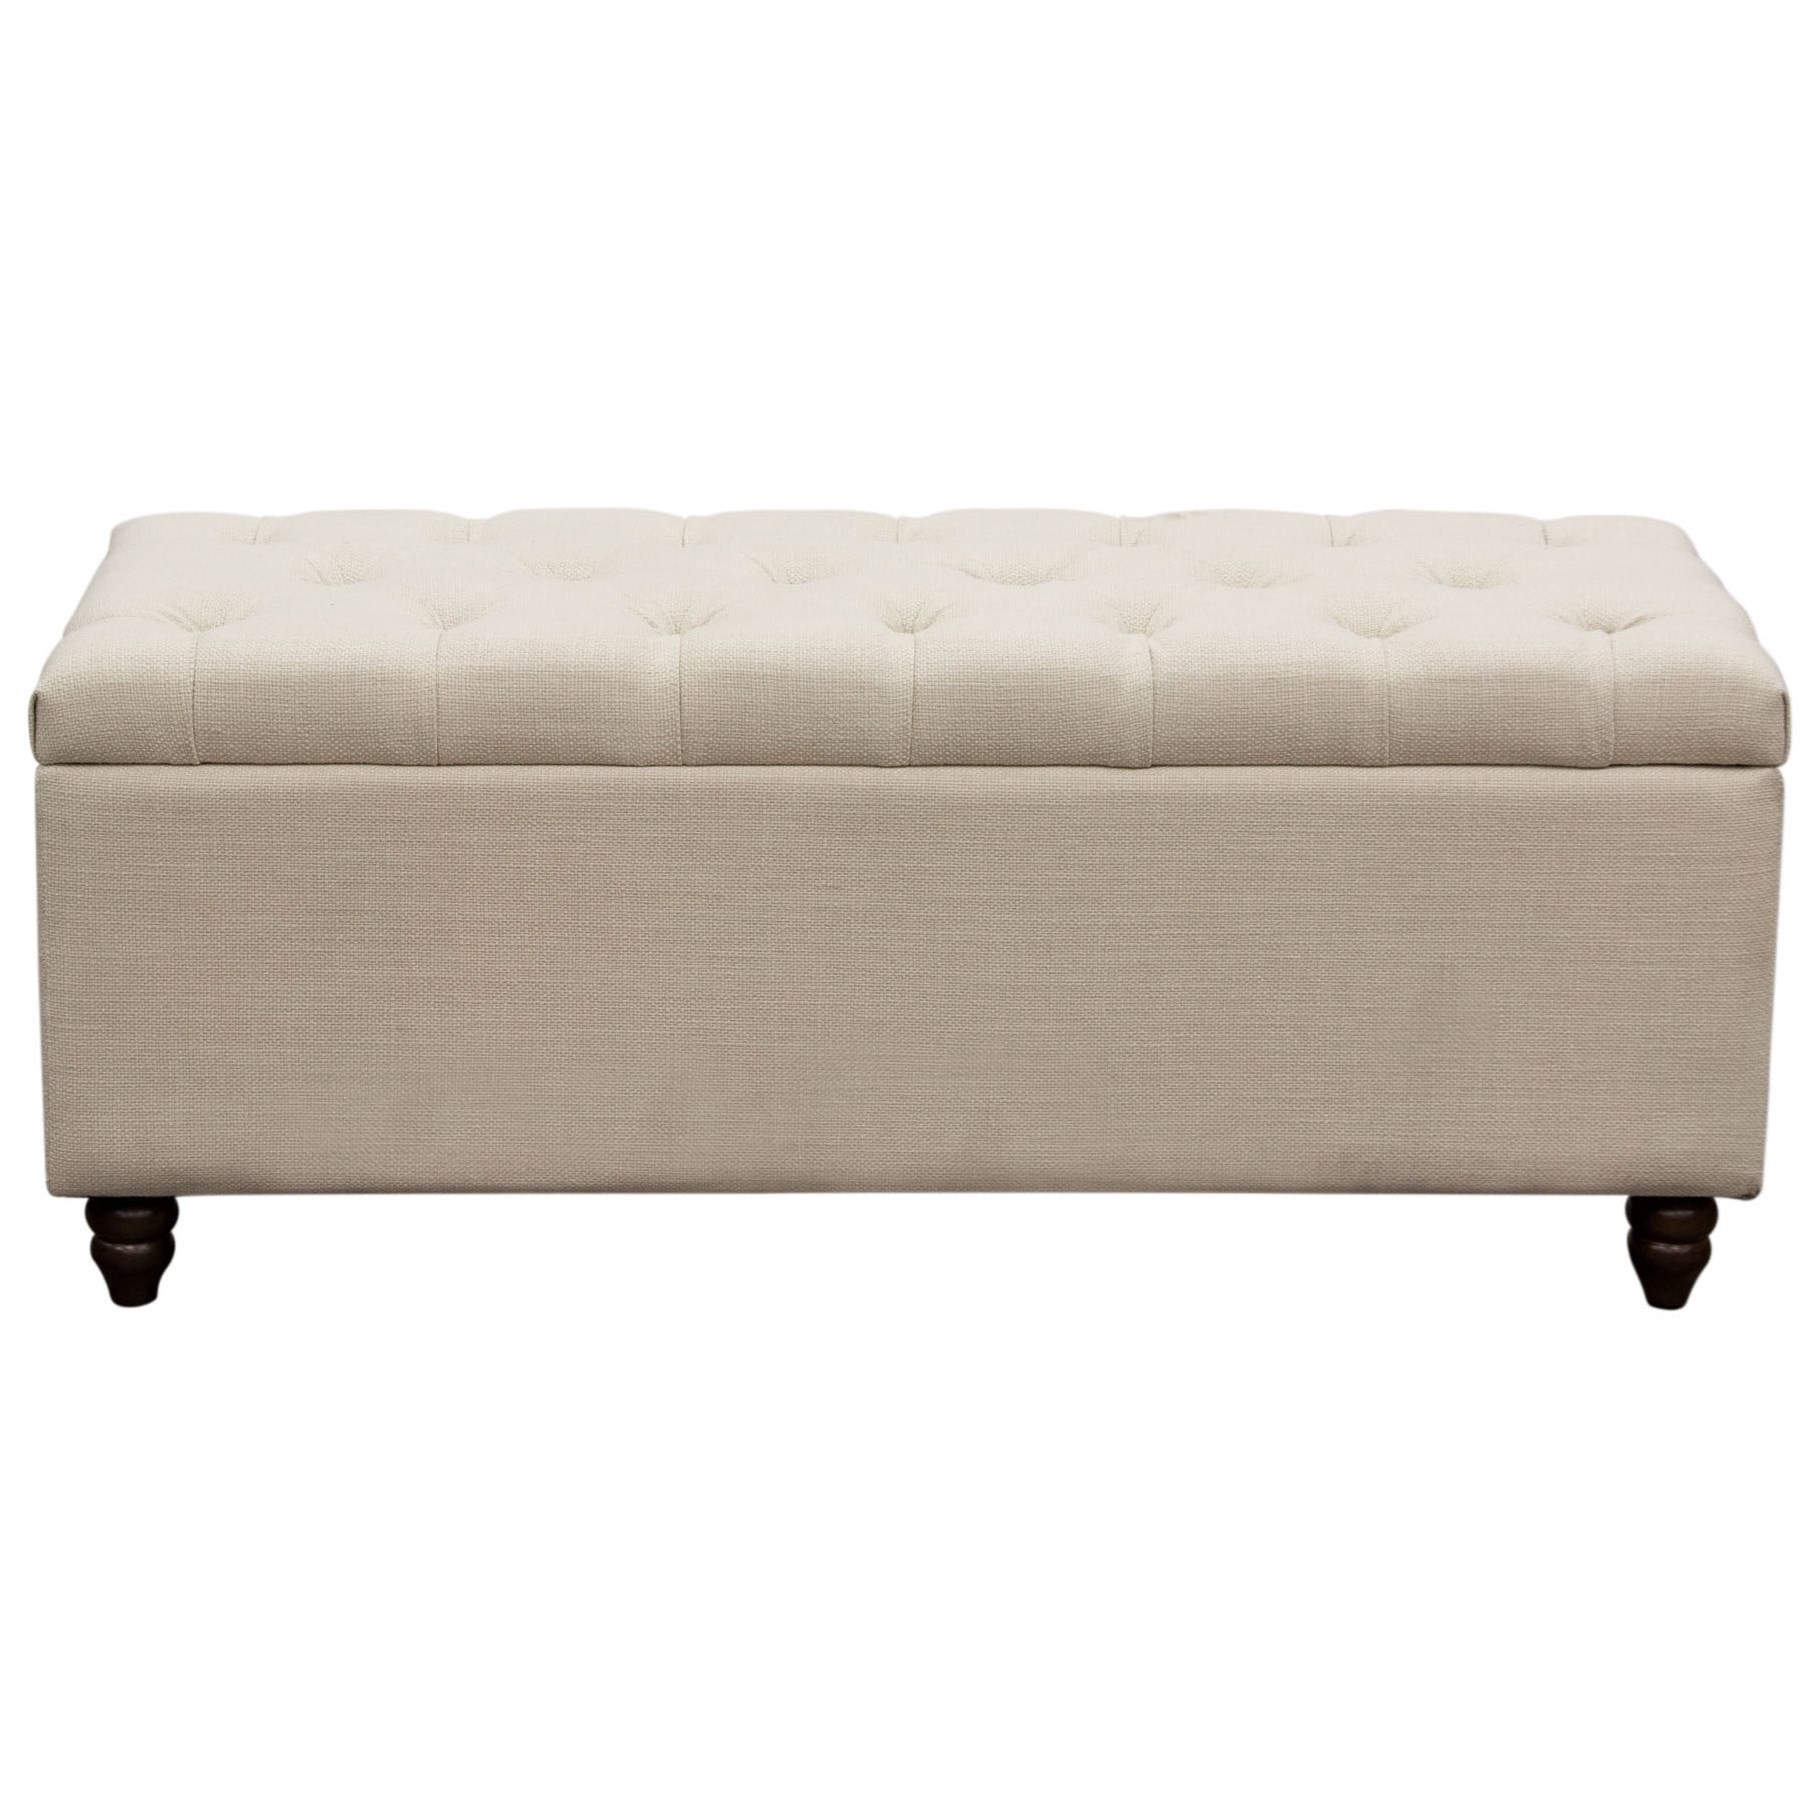 Park Ave Storage Trunk by Diamond Sofa at Red Knot